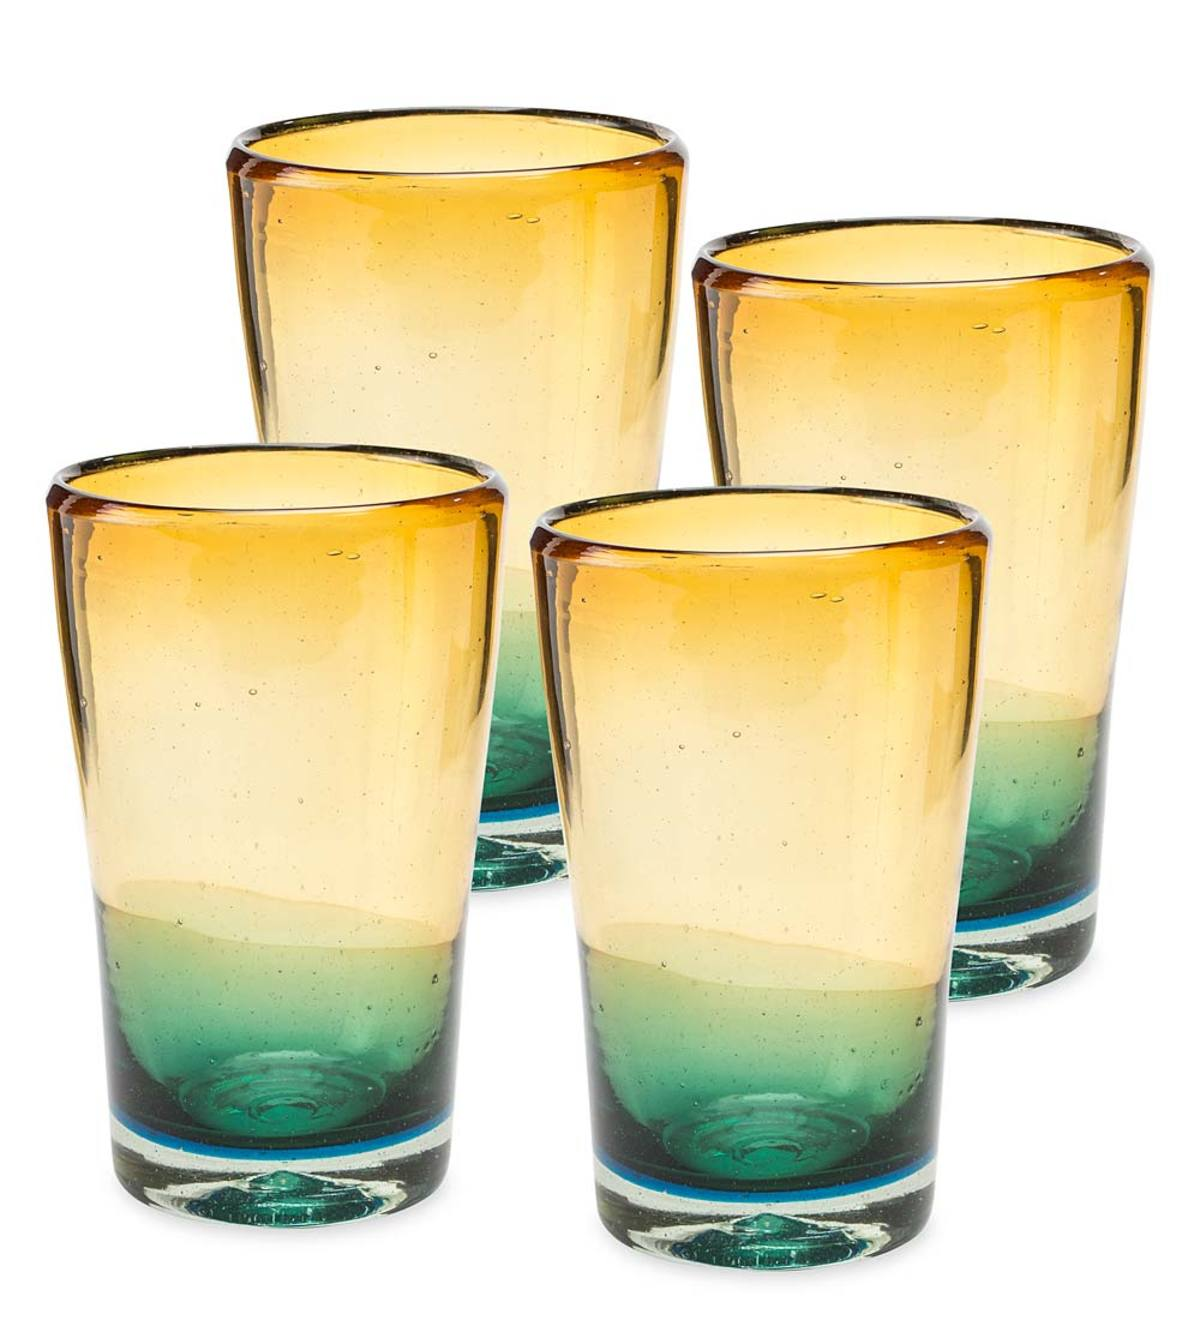 Golden Shore Recycled Glass Tall Glasses, Set of 4